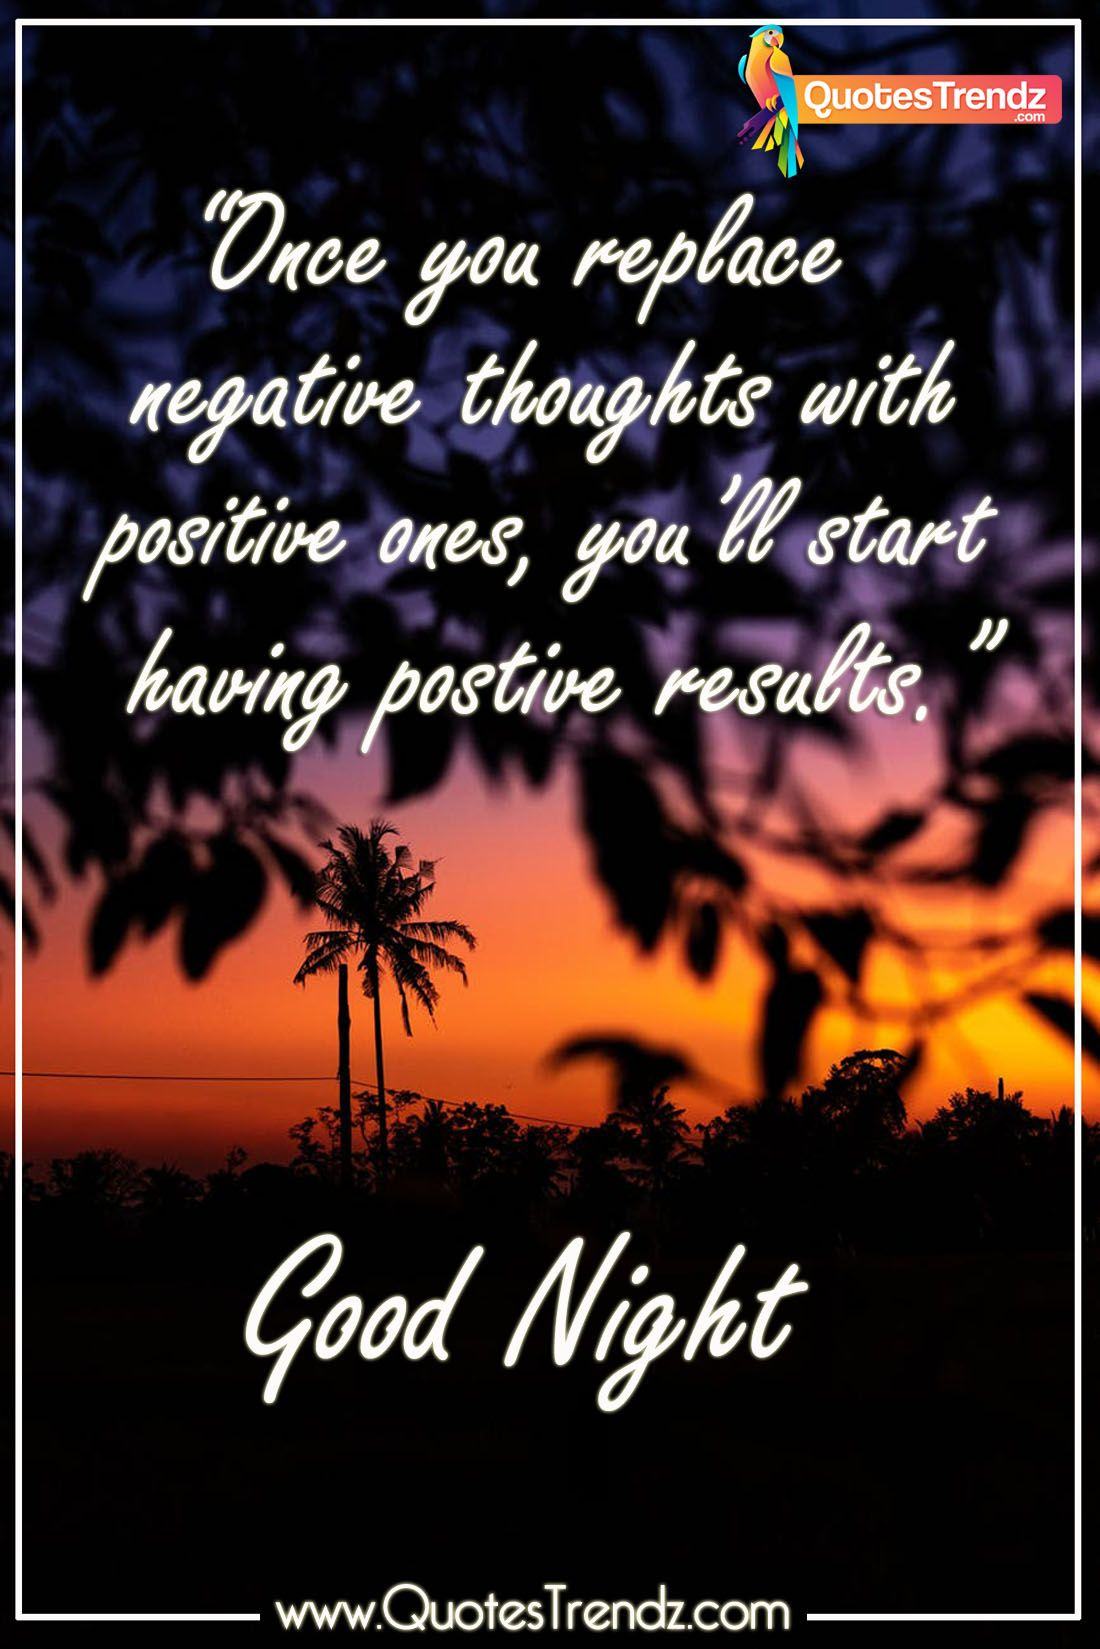 Good Night Quotes In English Good Night Quotes Night Quotes Positive Good Night Quotes